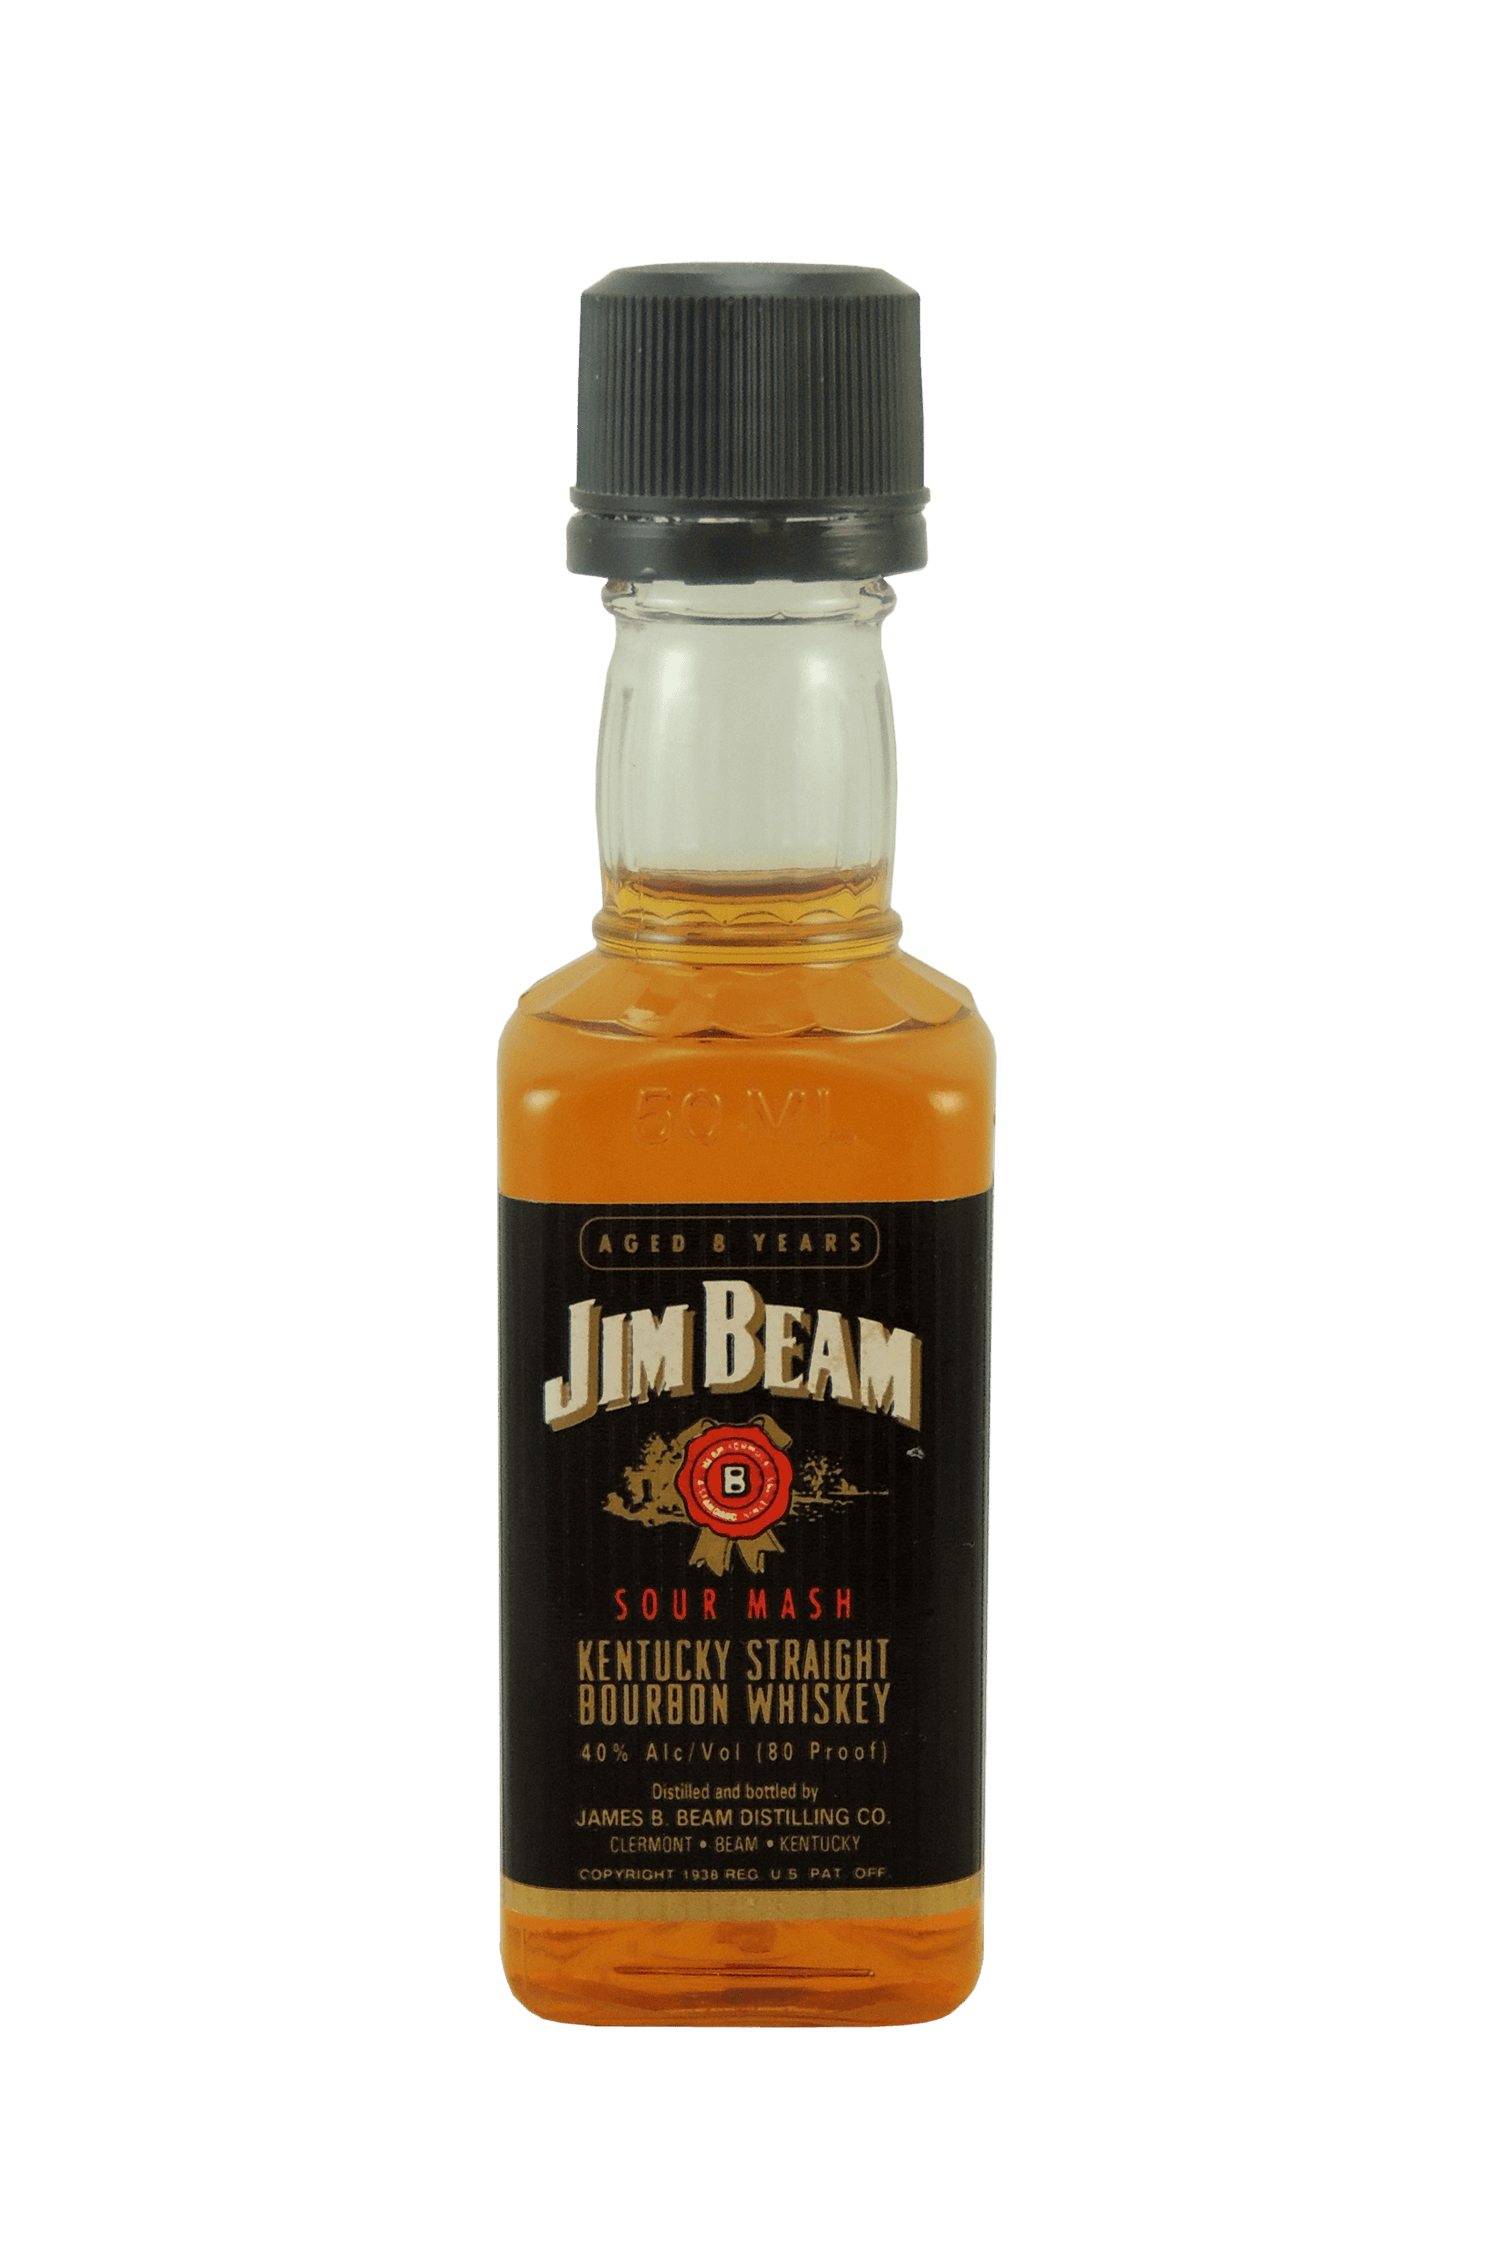 Jim Bean Sour Mash